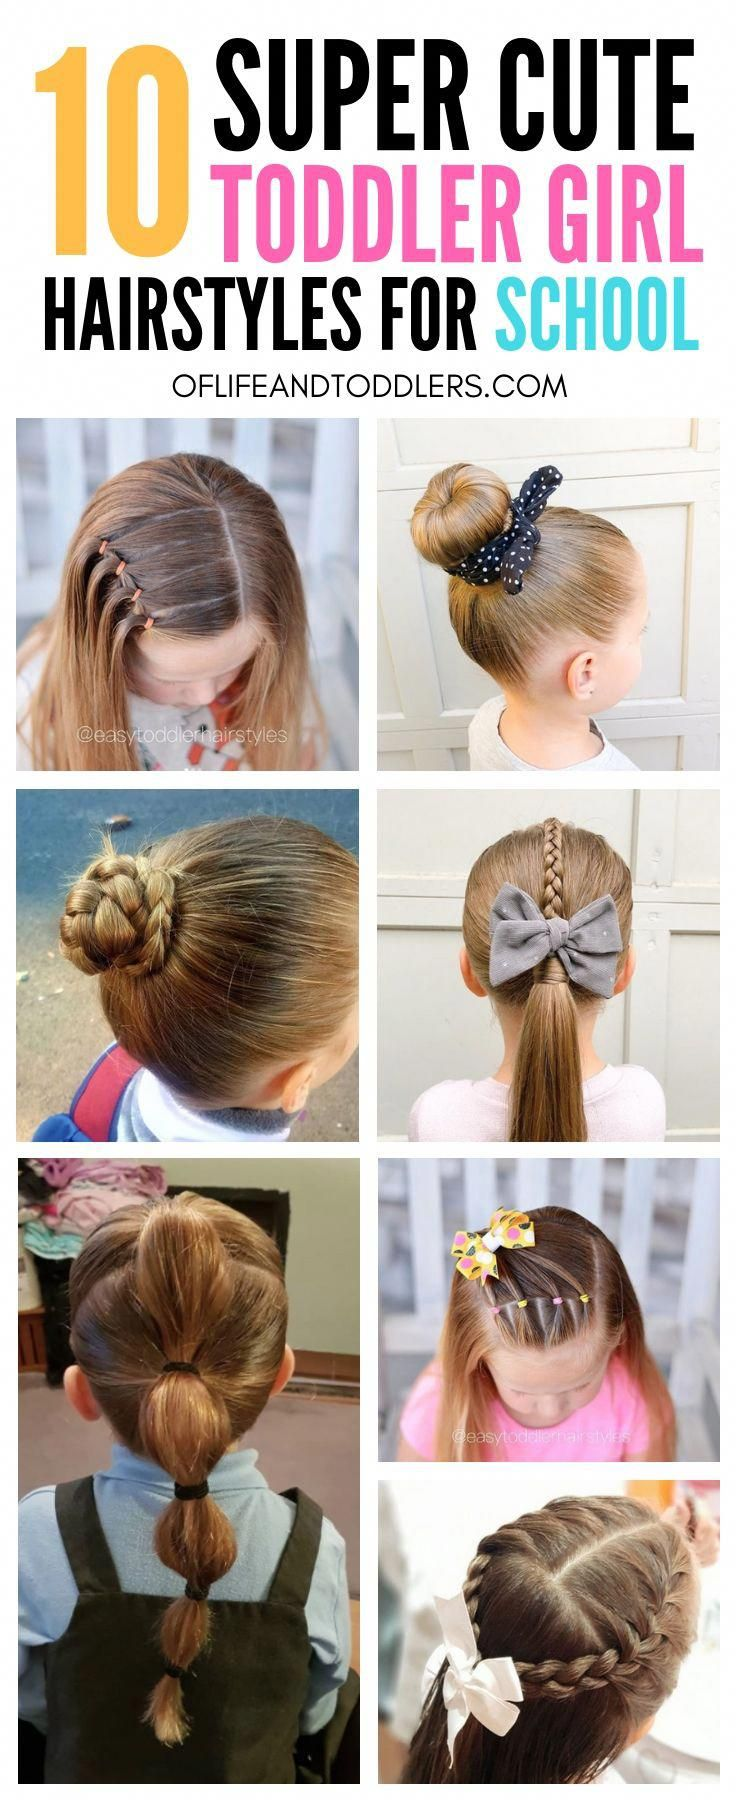 Short Hair Baby Girl Ponytail Hairstyles Fast Little Girl Hairstyles 20190420 Girls Hairstyles Easy Toddler Hairstyles Girl Kids Hairstyles